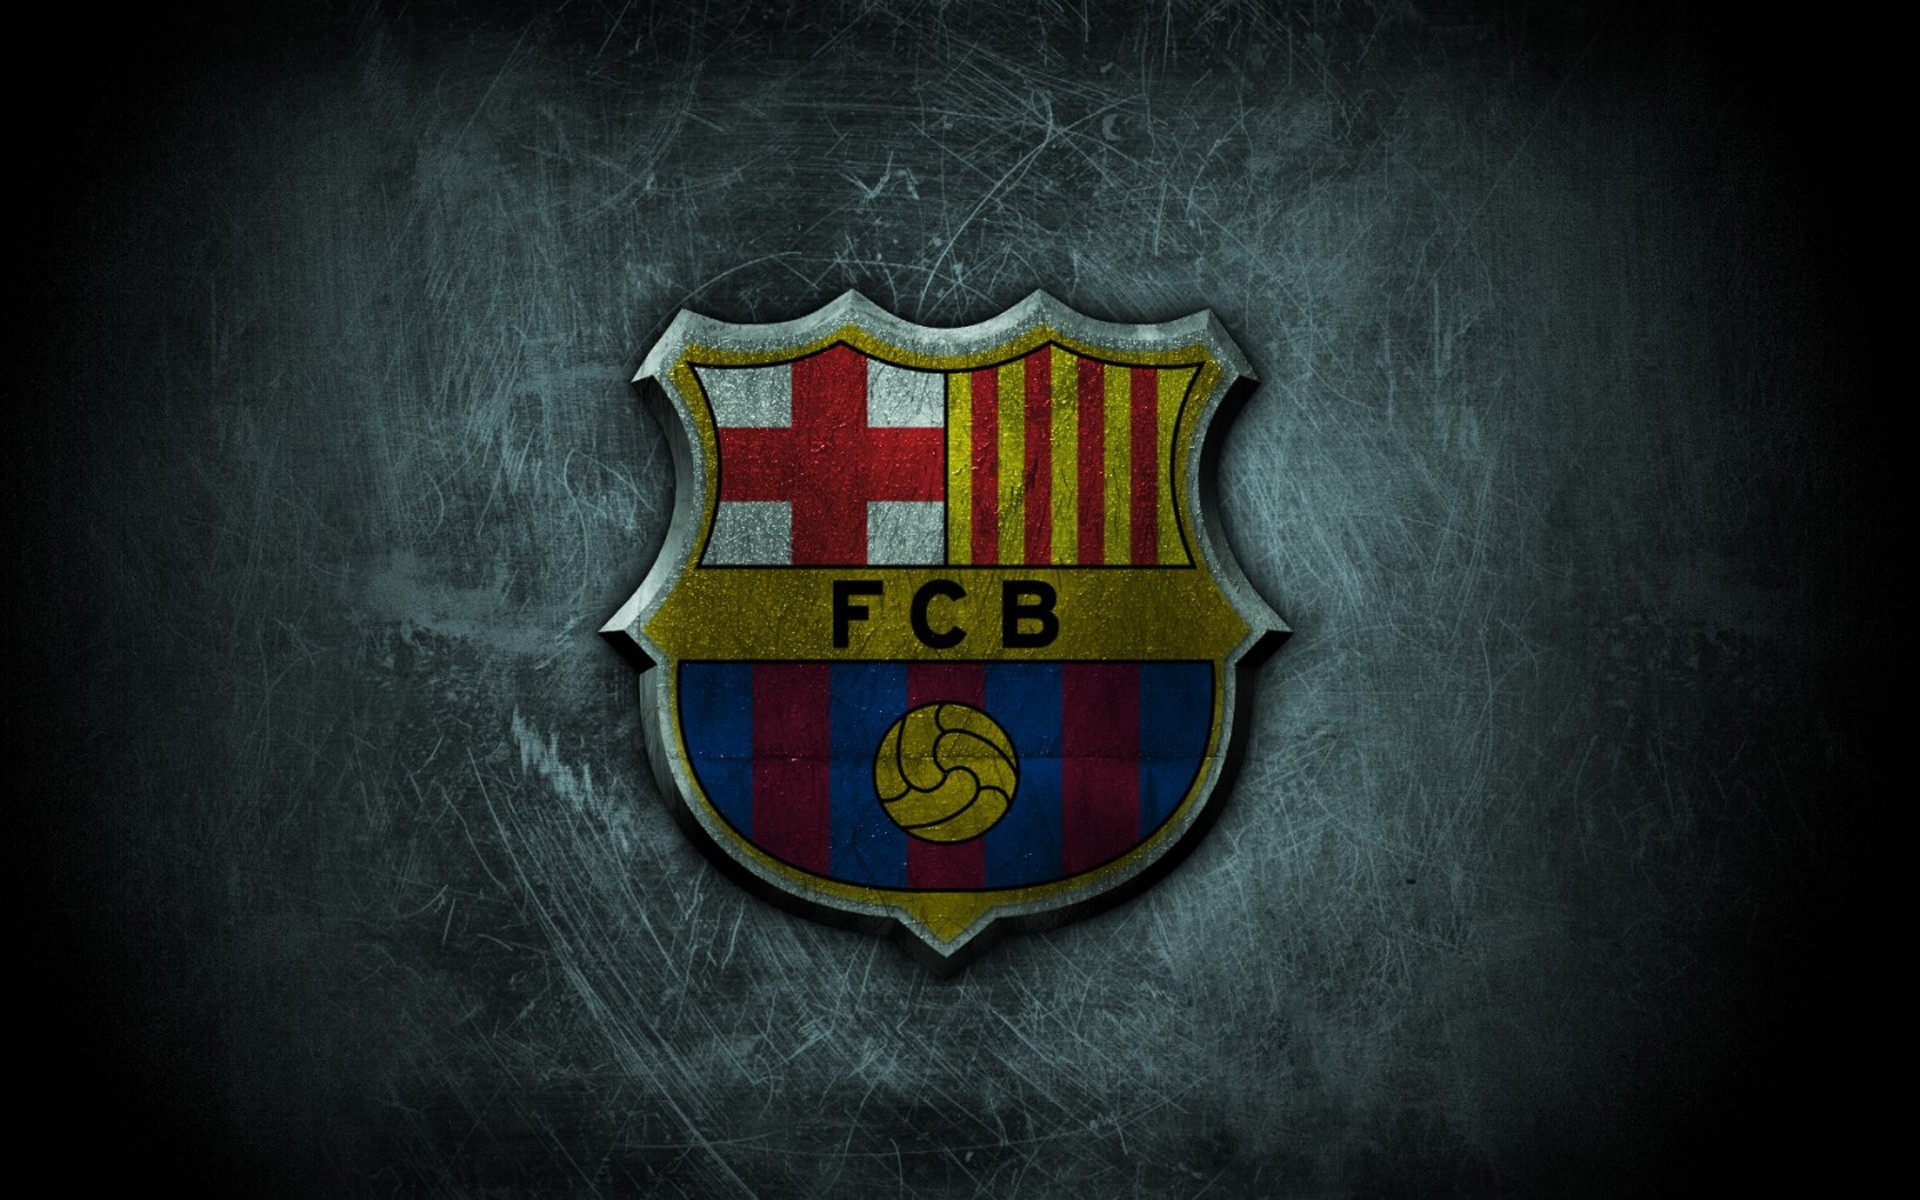 1920x1200 Fc Barcelona Lobo Hd And 3D Home Search Results For Fc Barcelona Lobo